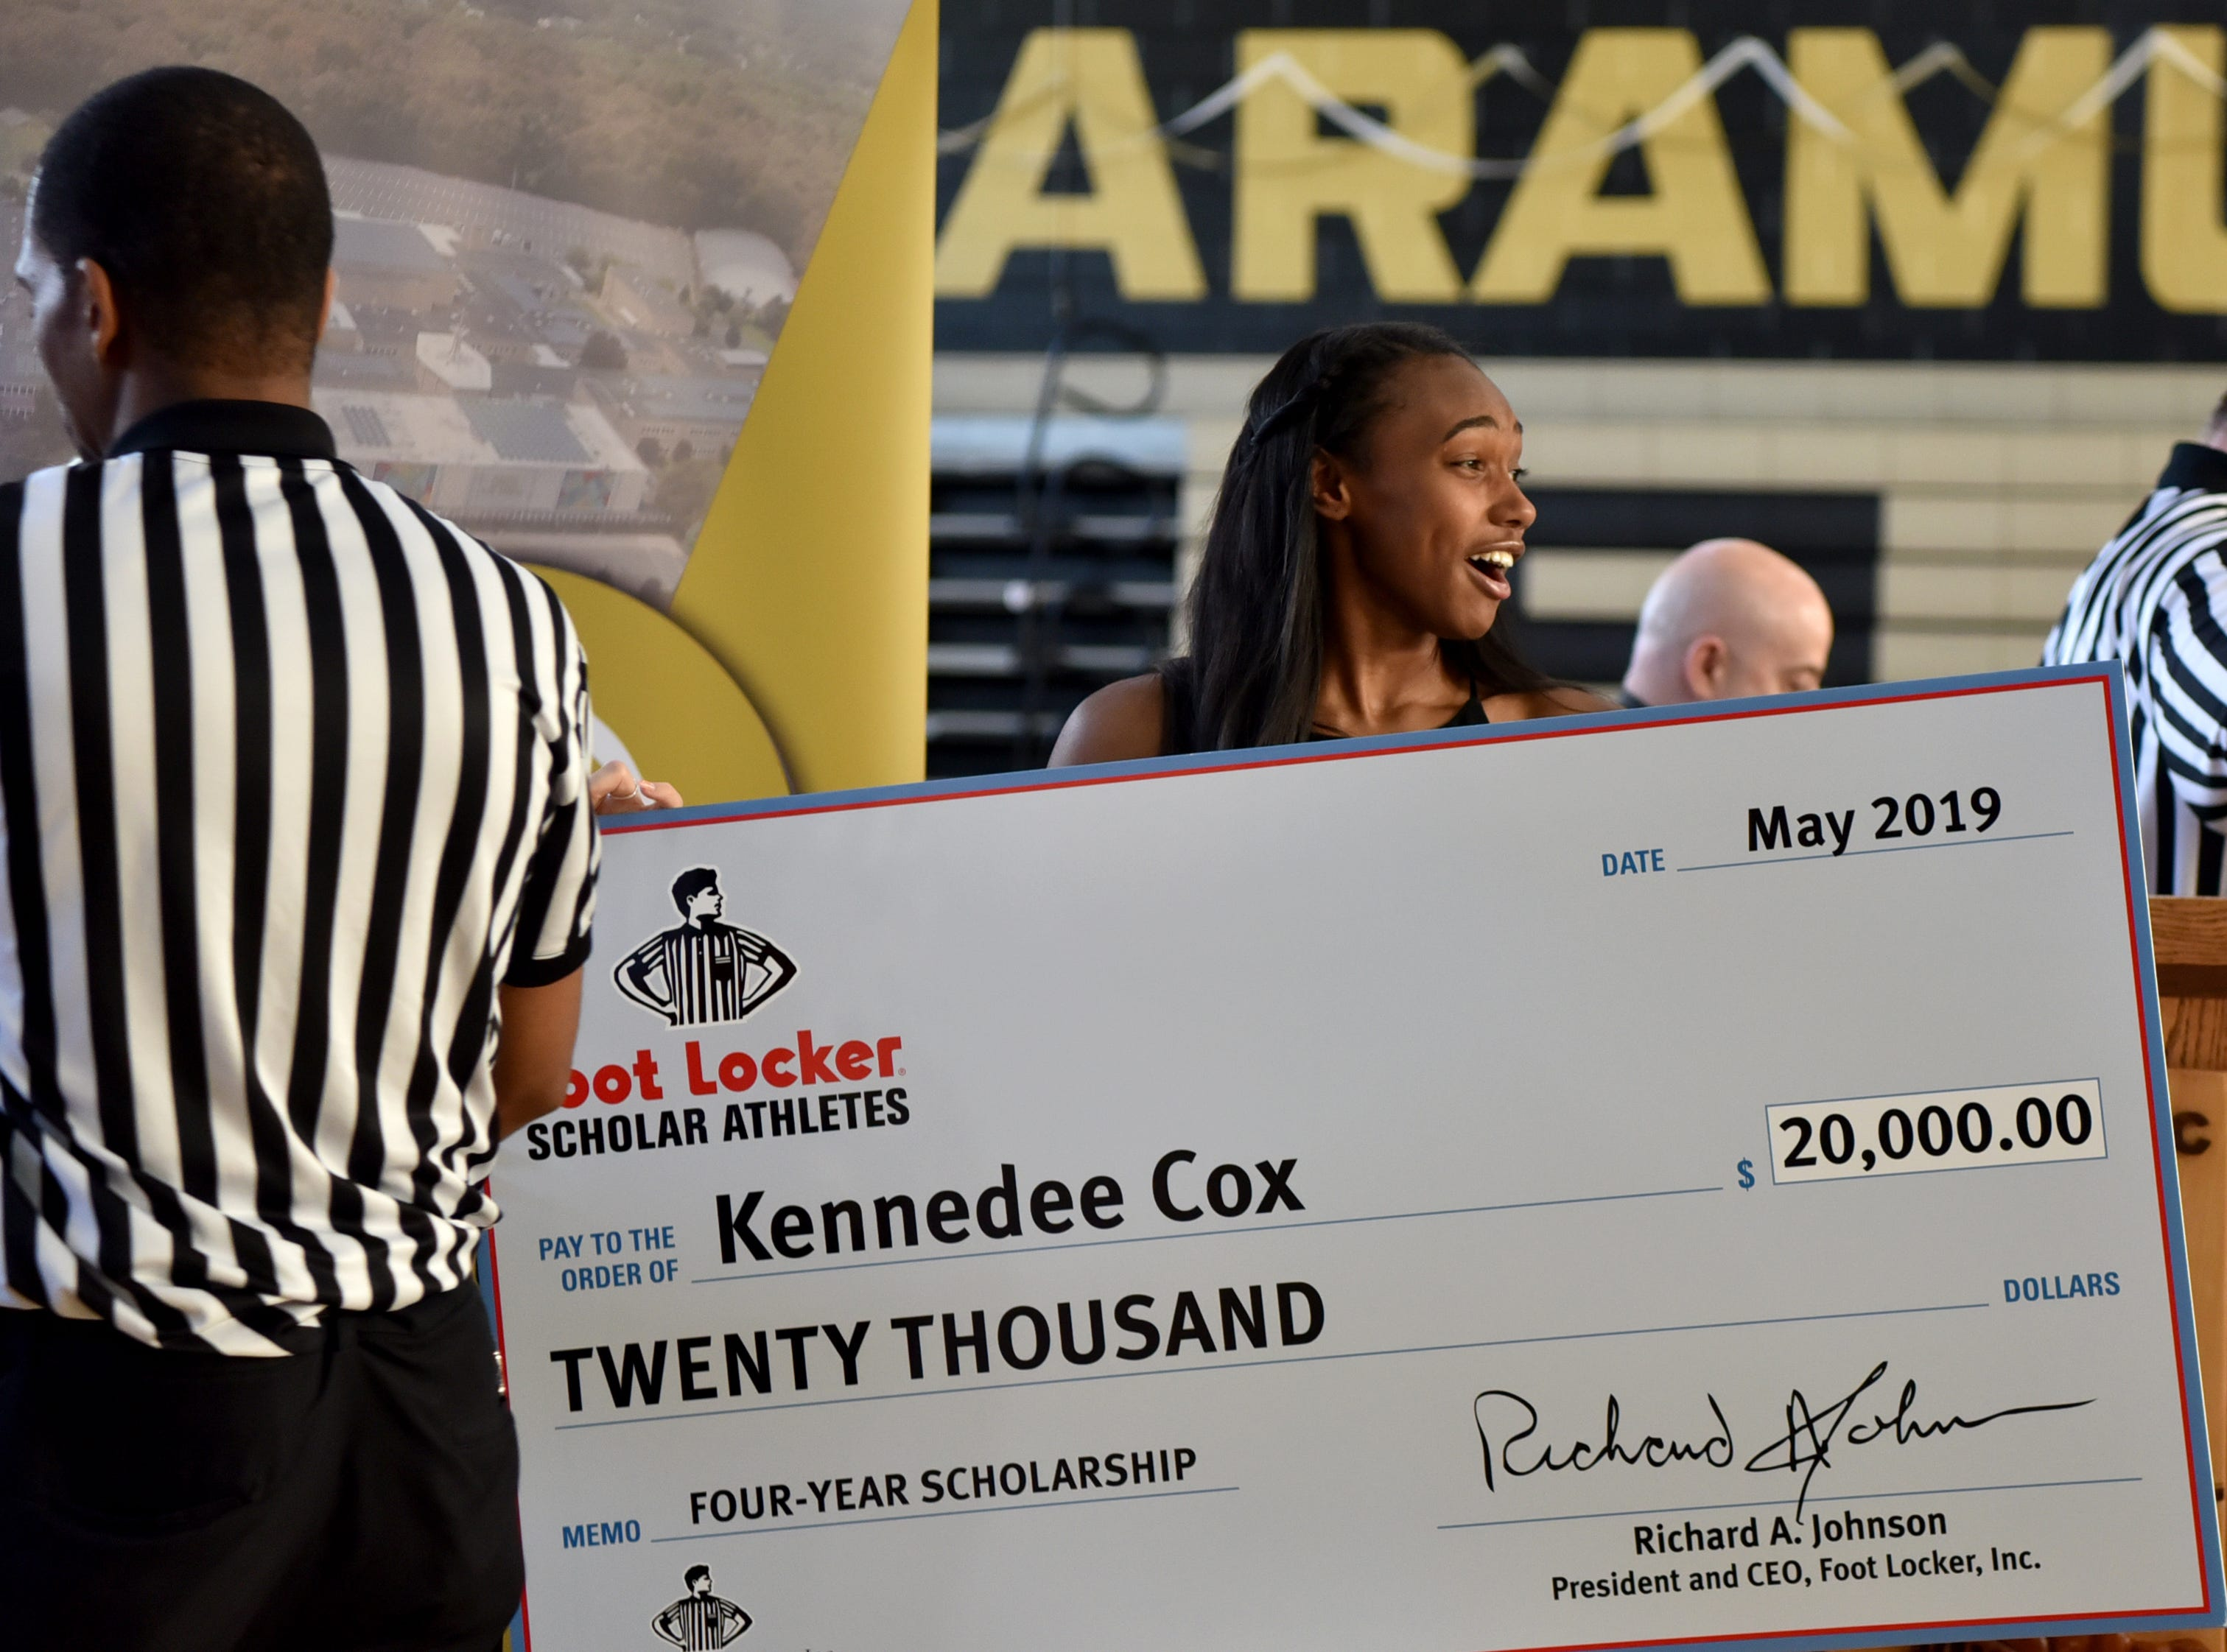 Paramus Catholic senior Kennedee Cox poses for a picture with her $20,000 check from the Foot Locker Scholar Athletes Program. Cox, of Teaneck, runs track at Paramus Catholic. Foot Locker representatives surprised Cox with the announcement at school on Wednesday, May 15, 2019.